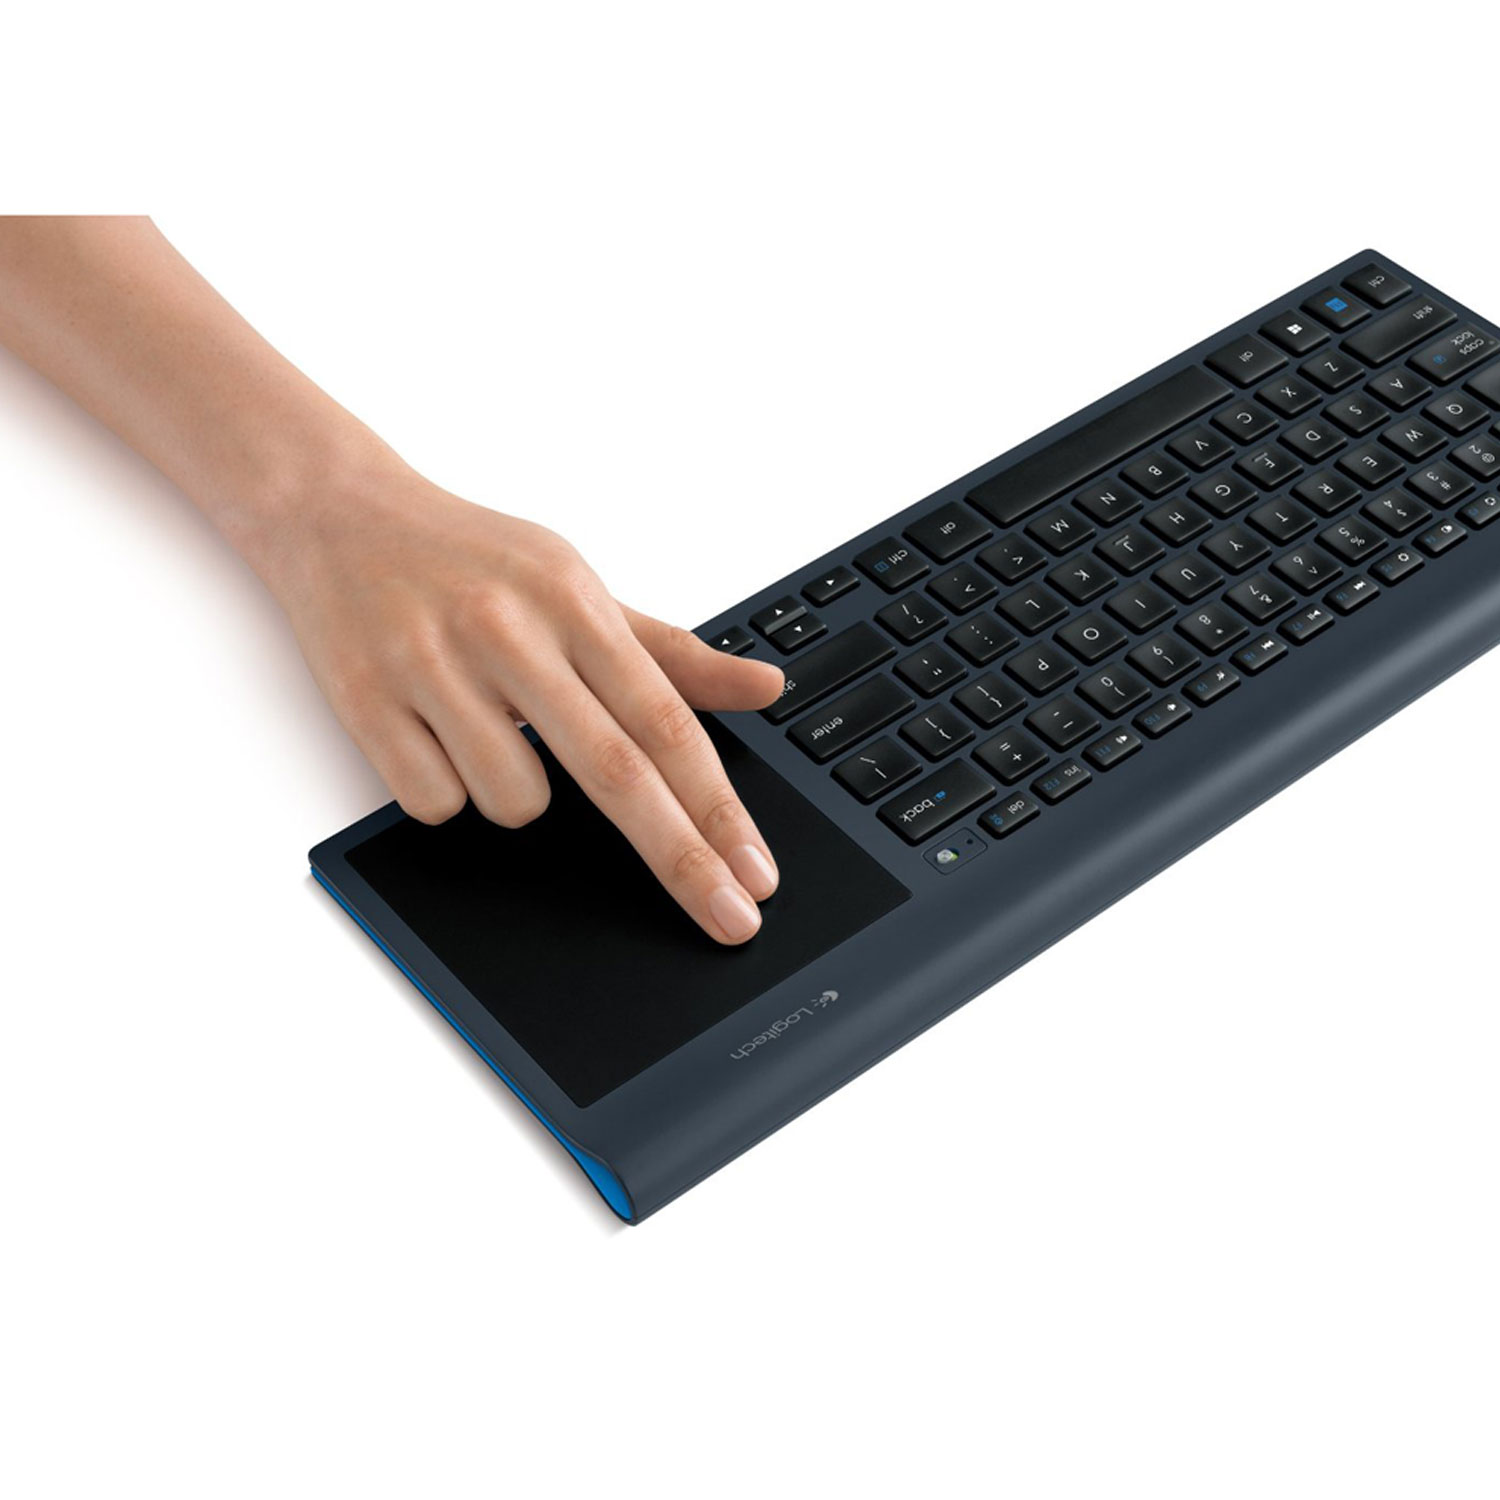 Logitech Wireless All-In-One Keyboard  with Built-In Touch pad - Refurbished